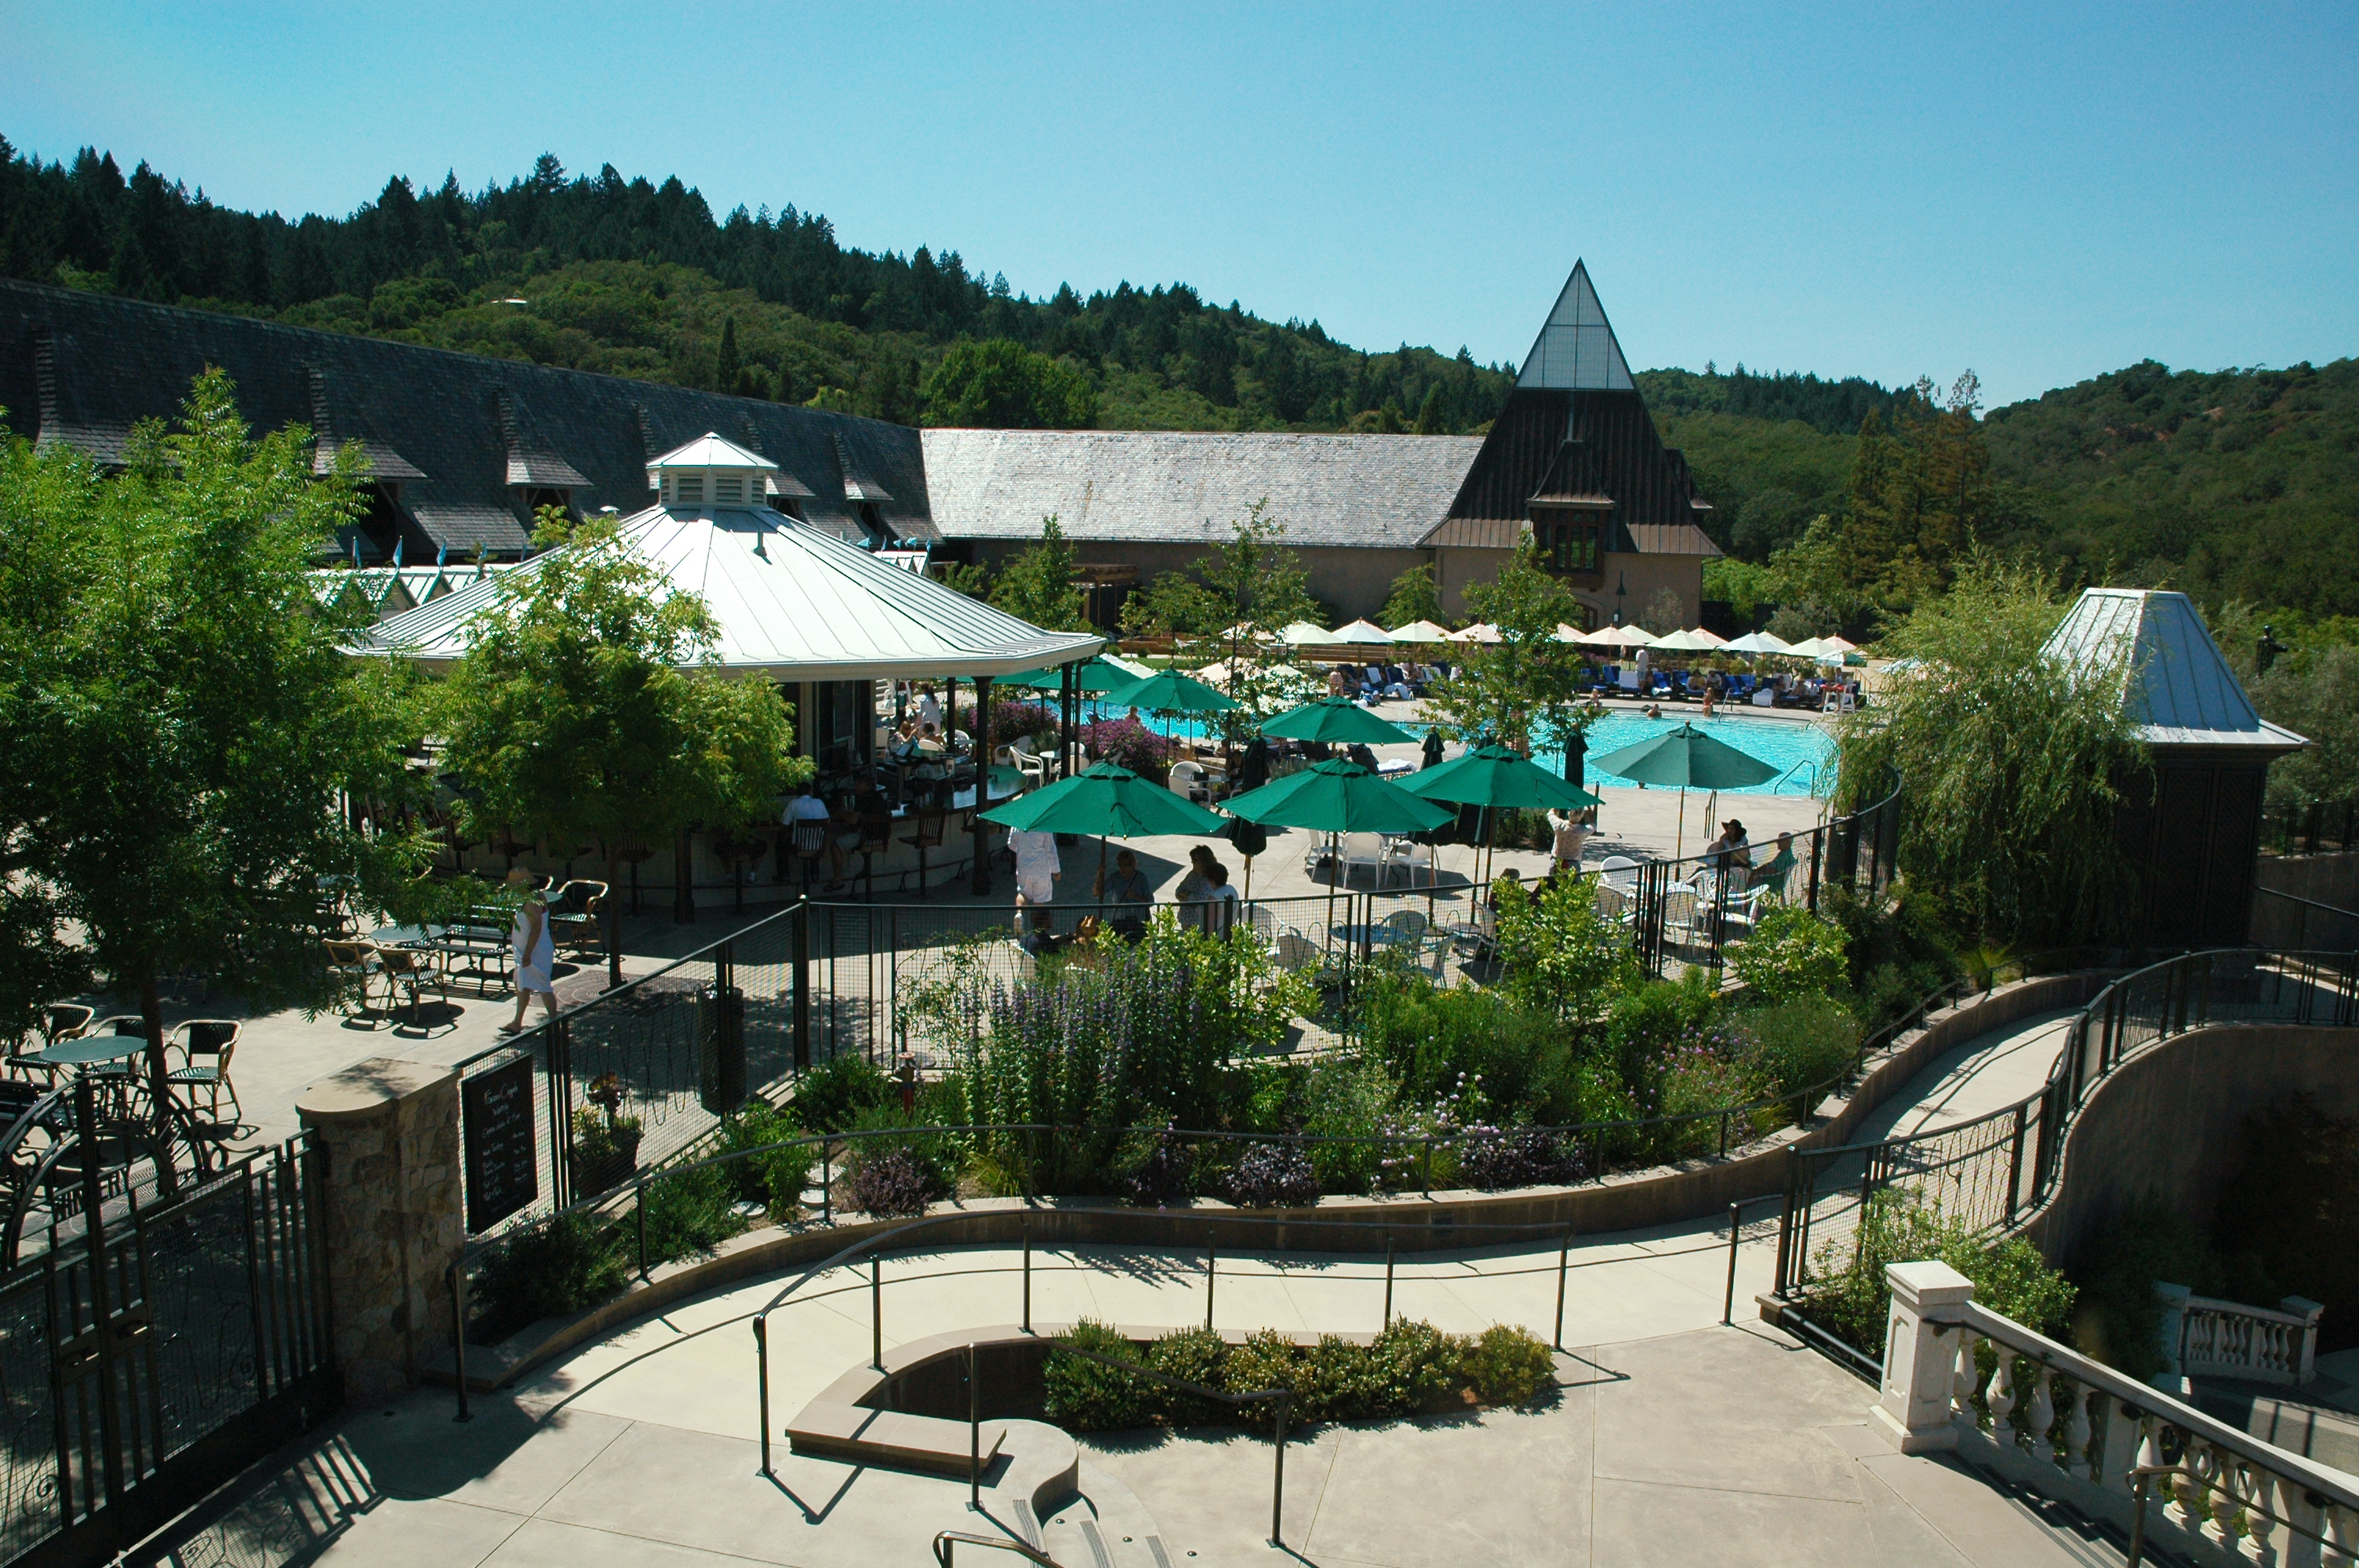 file:francis ford coppola winery in 2011 - wikimedia commons